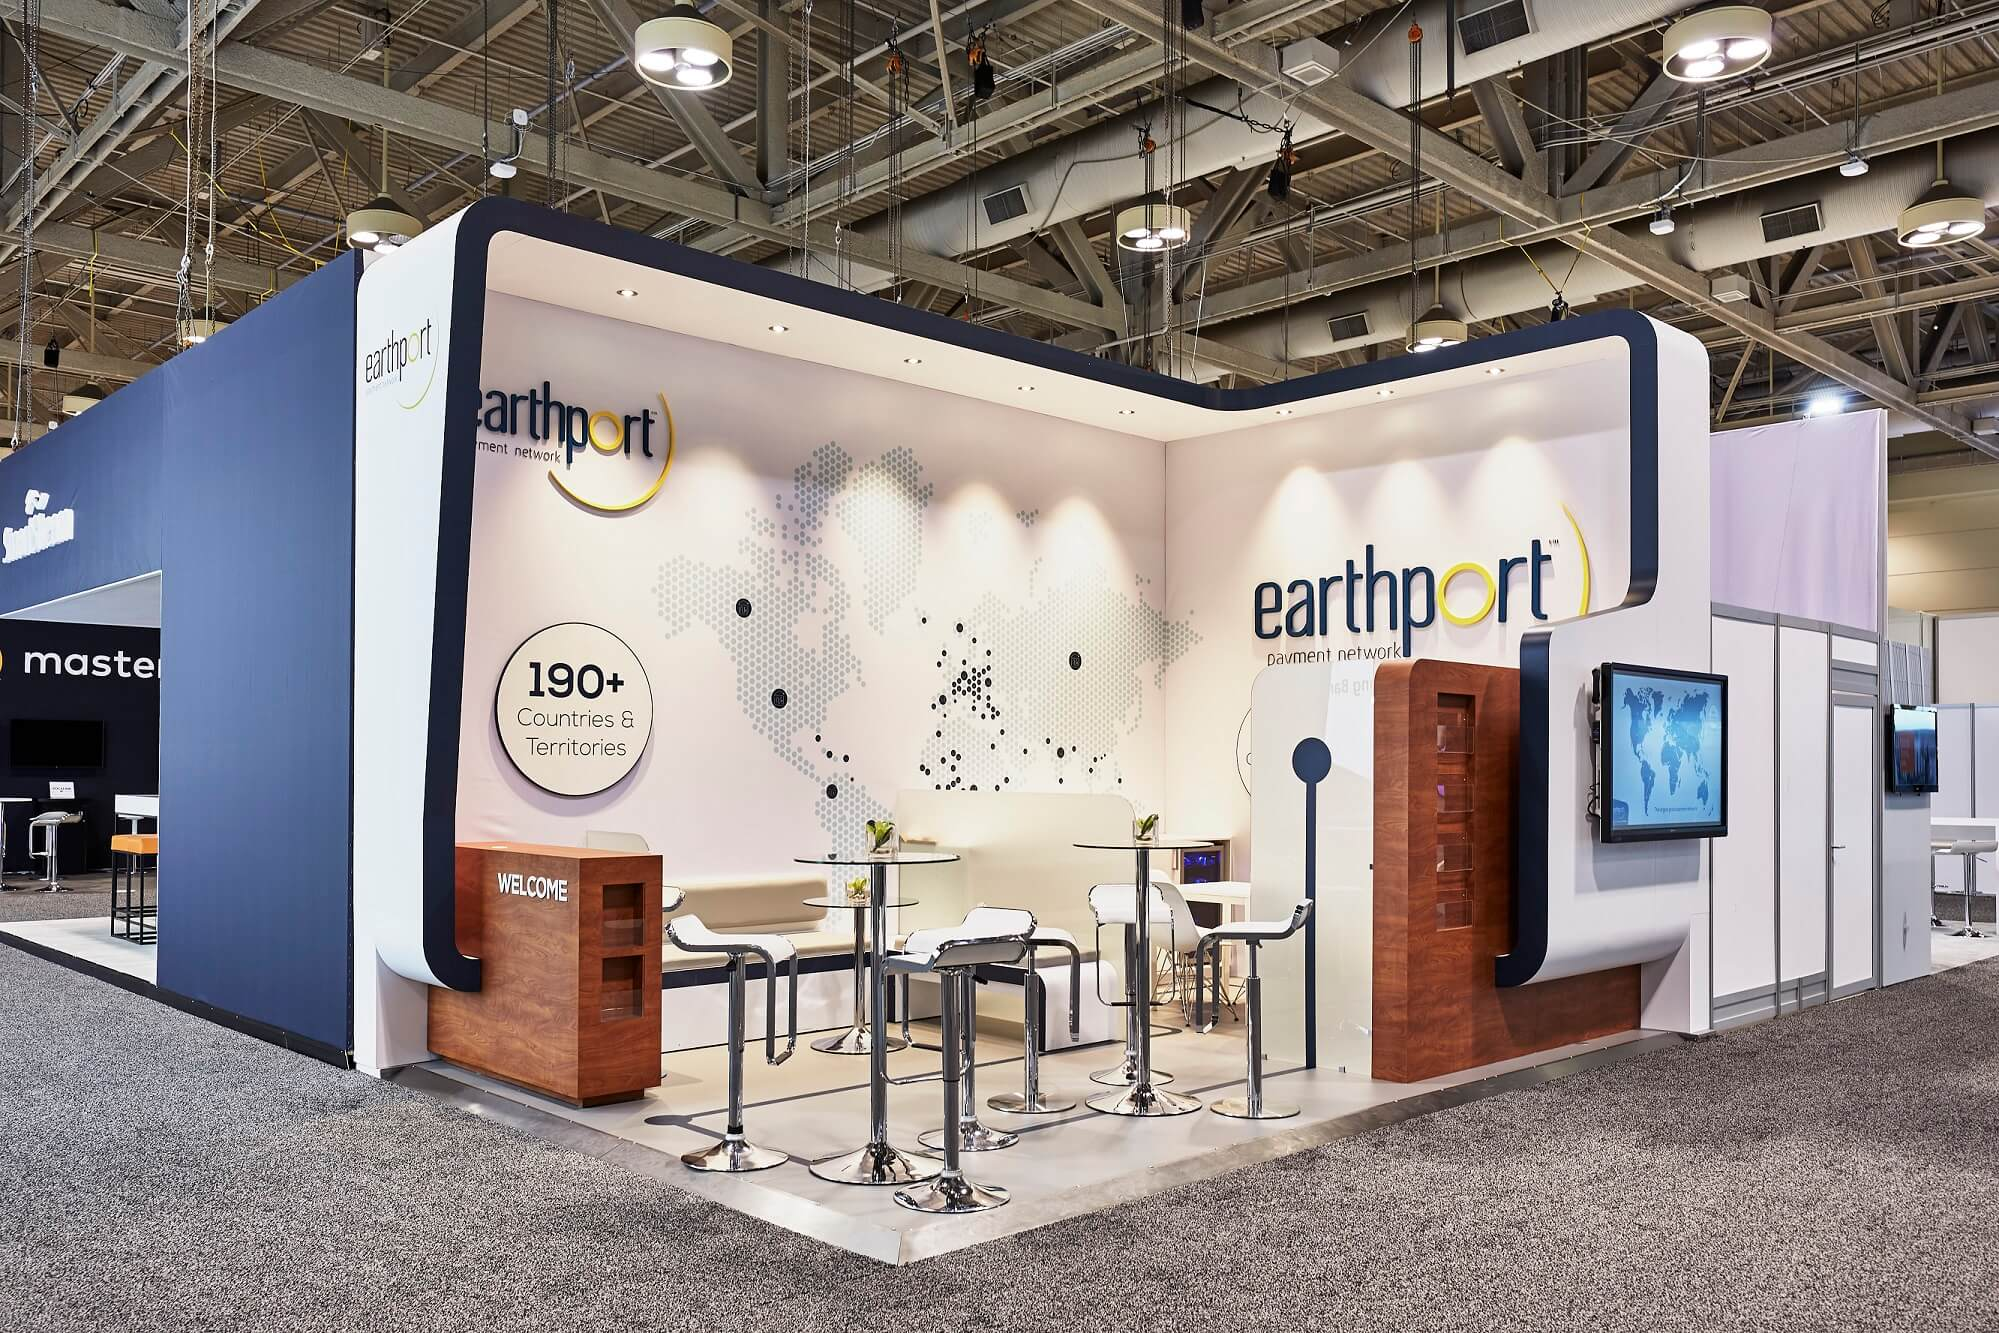 Earthport, Sibos 2017